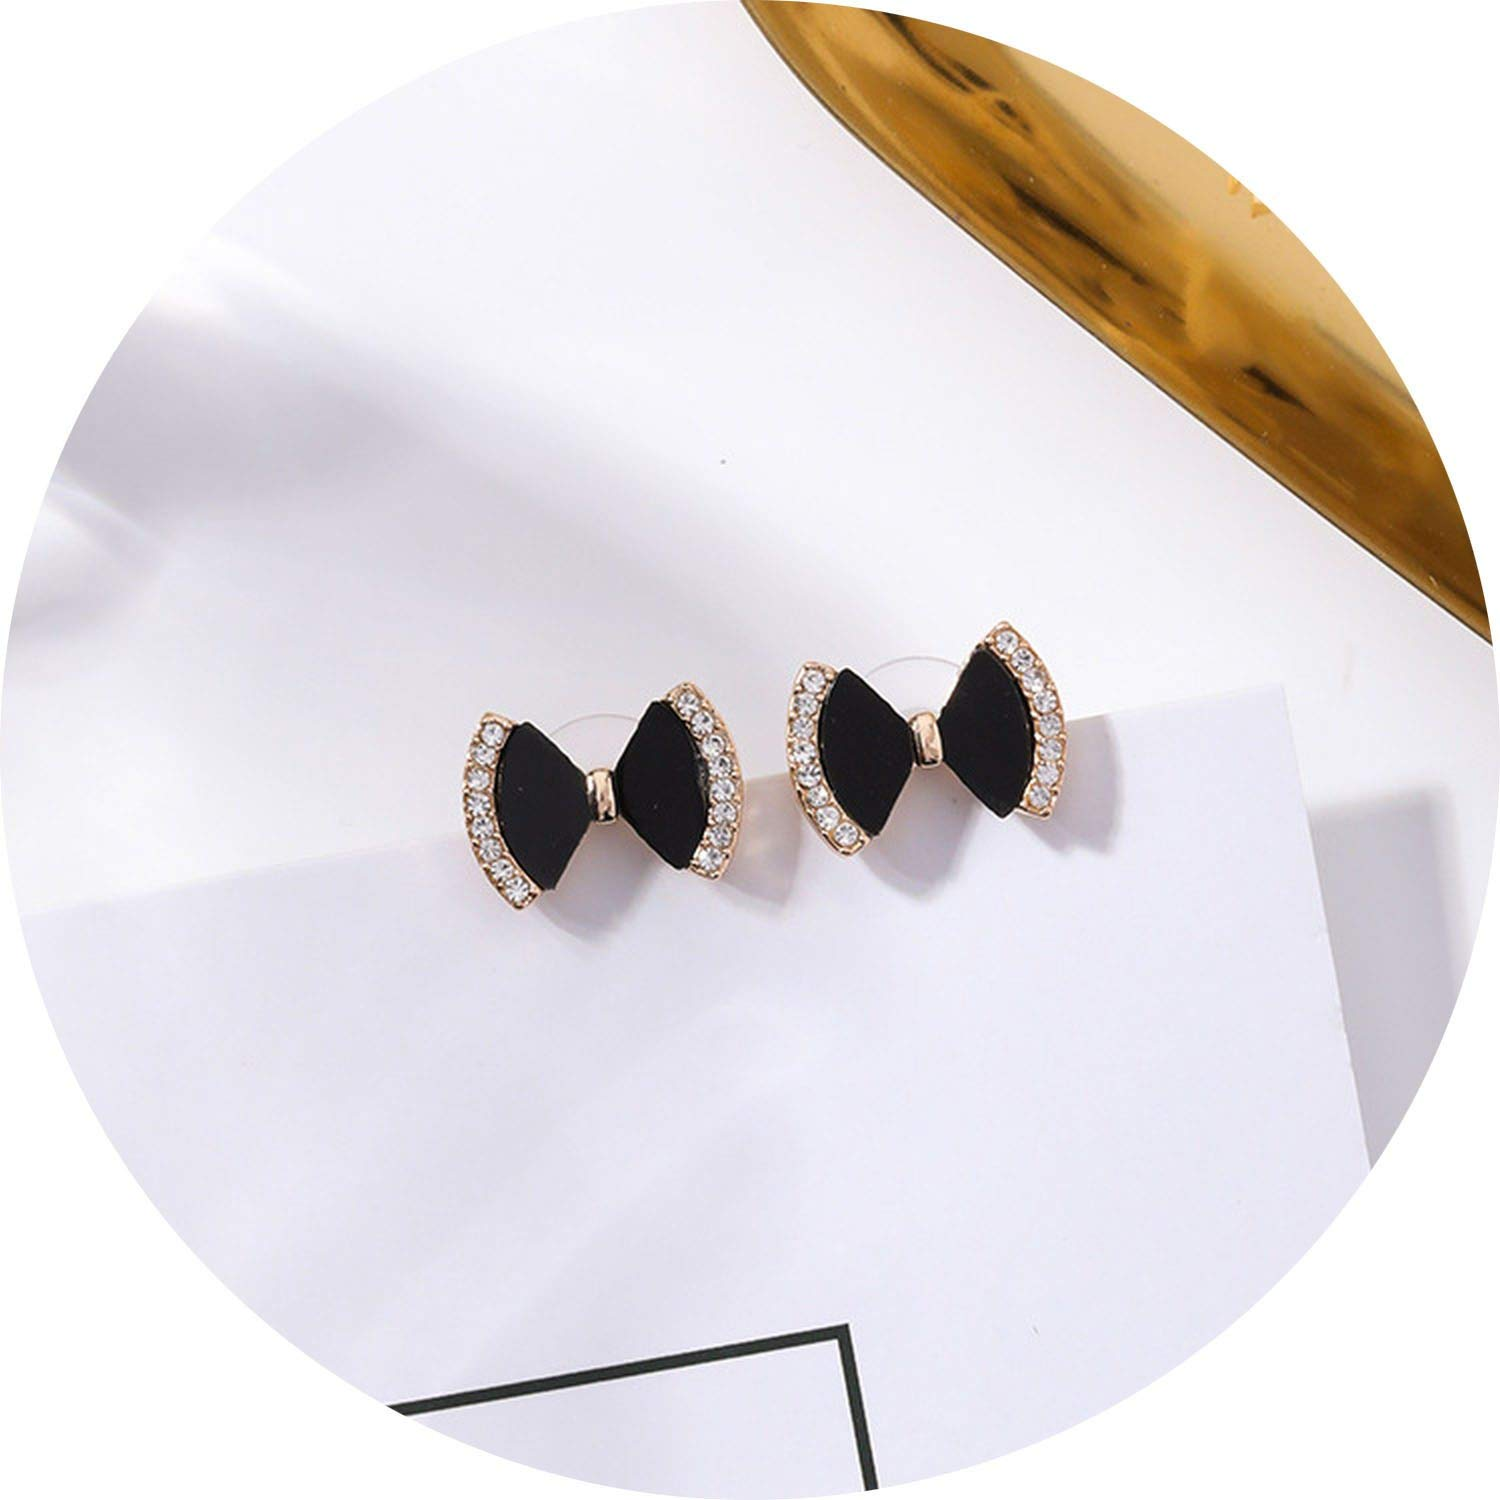 New Arrival Plant Resin Women Classic Stud Earrings Individual Daisy Earrings Fashion Jewelry Womens Accessories